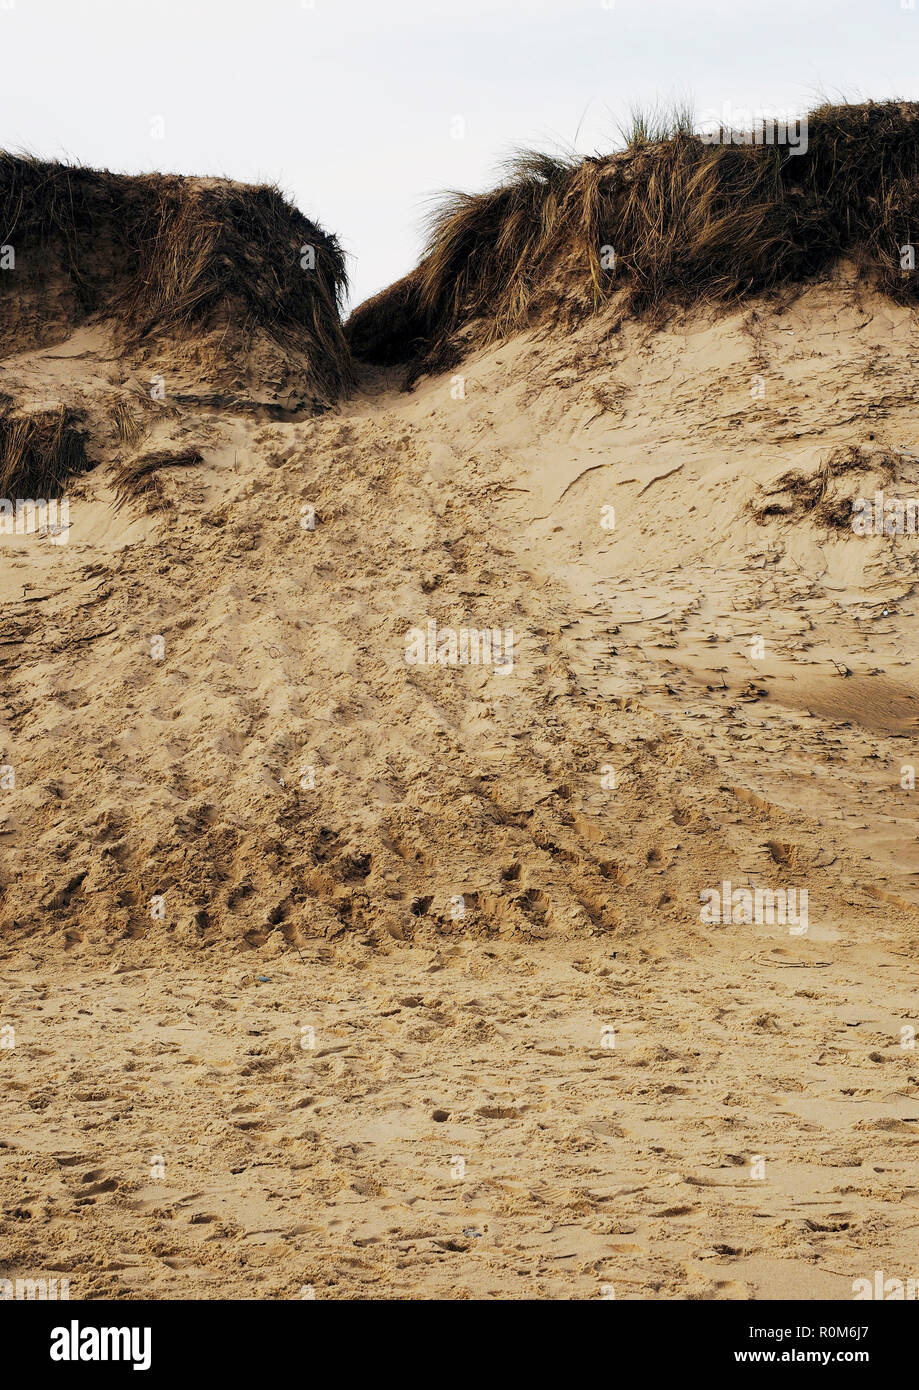 Serious erosion in sand dunes at Winterton, Norfolk caused by people taking a short-cut to the beach destabilises and weakens the dunes. - Stock Image